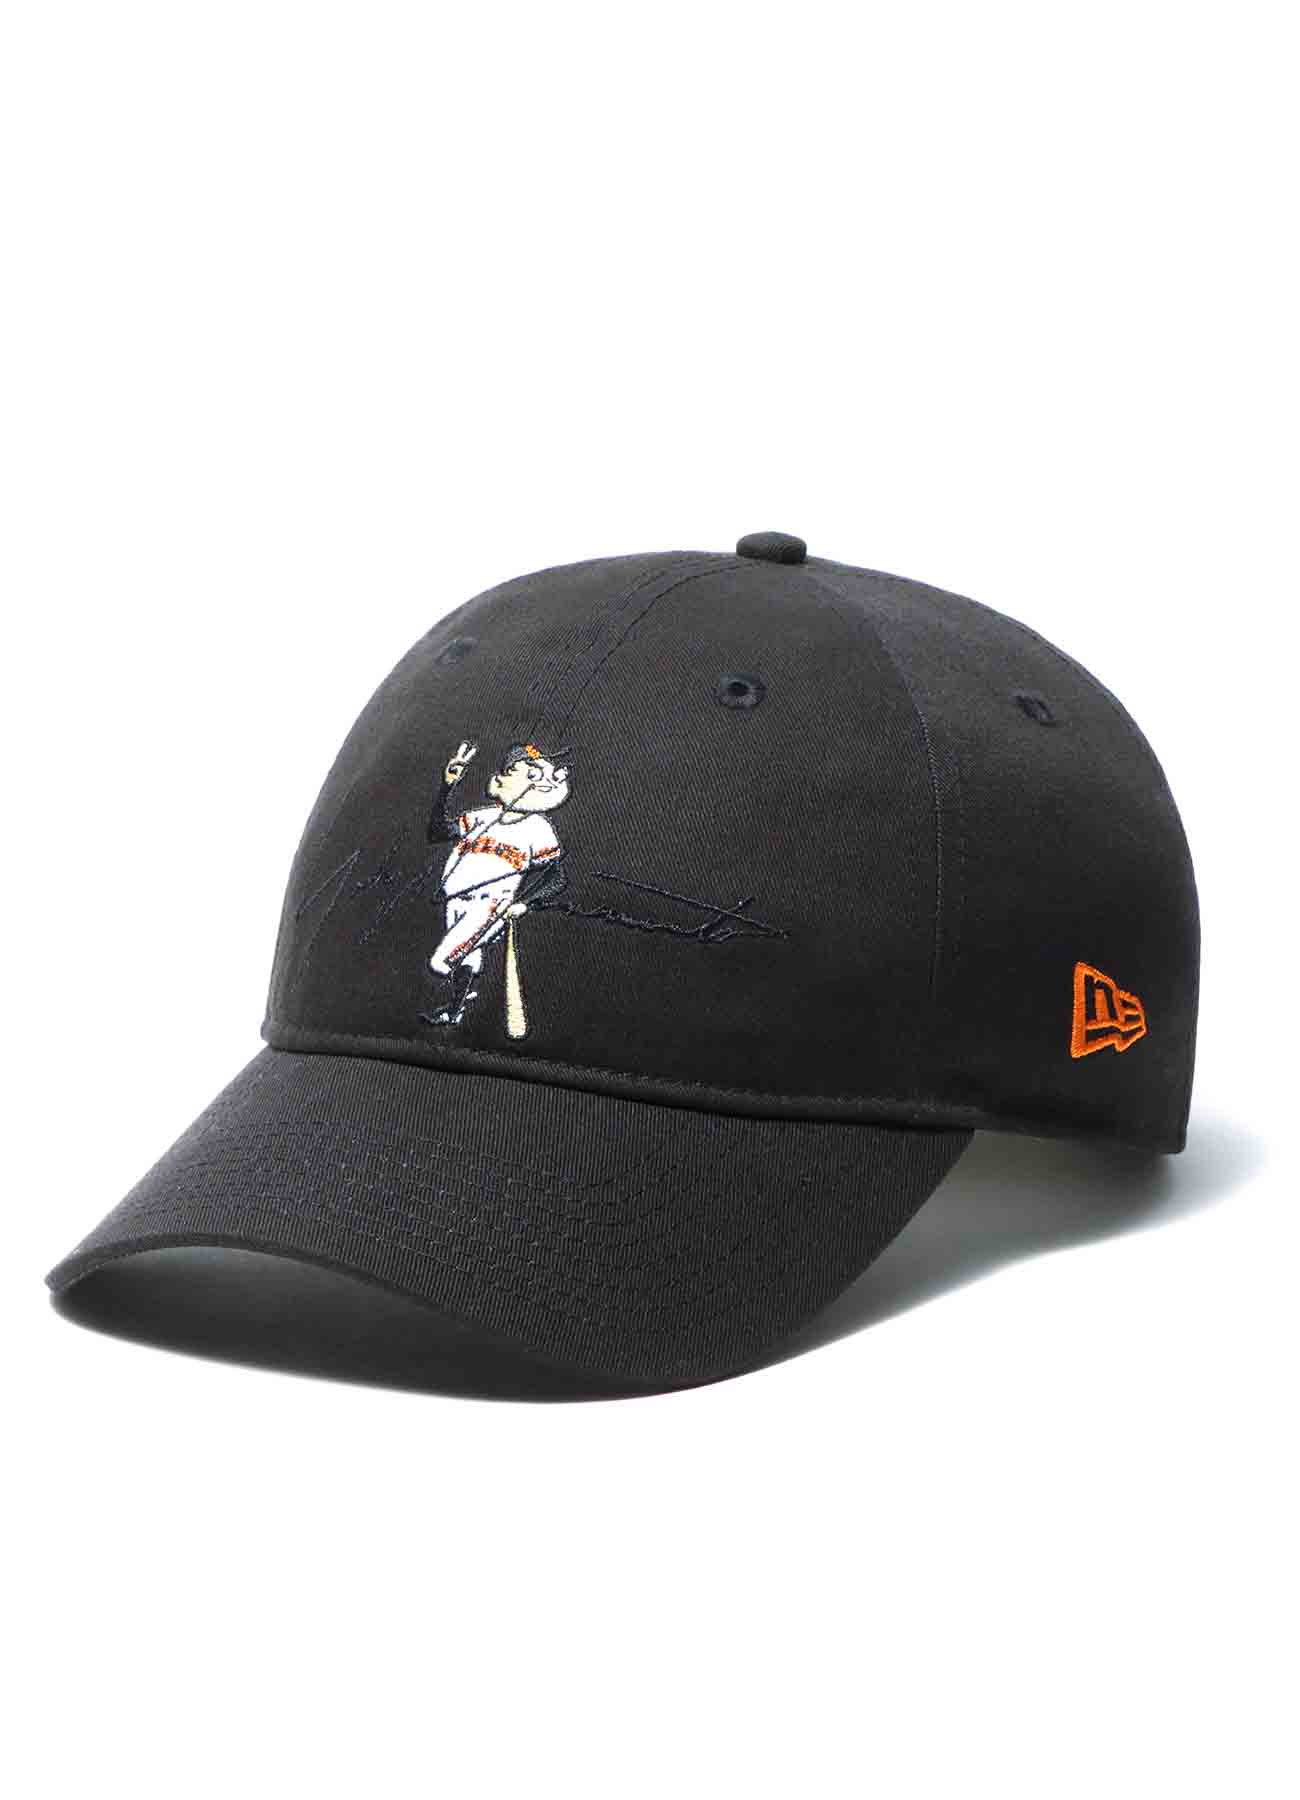 Yohji Yamamoto × Yomiuri Giants × New Era 9THIRTY Cotton Black Orange